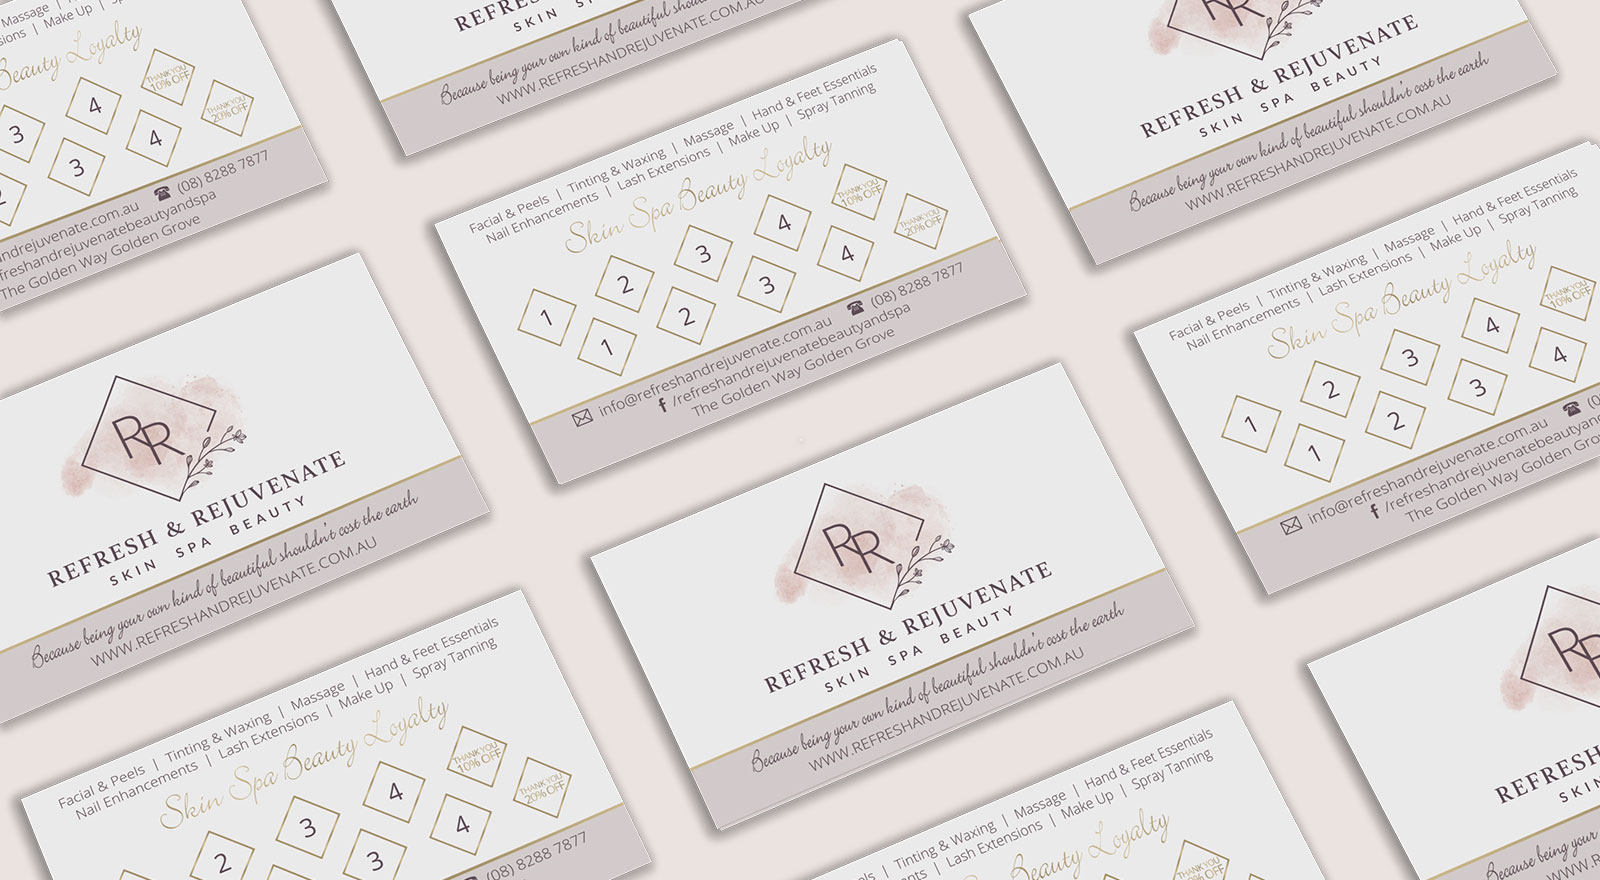 Business Loyalty Card design for Refresh & Rejuvenate